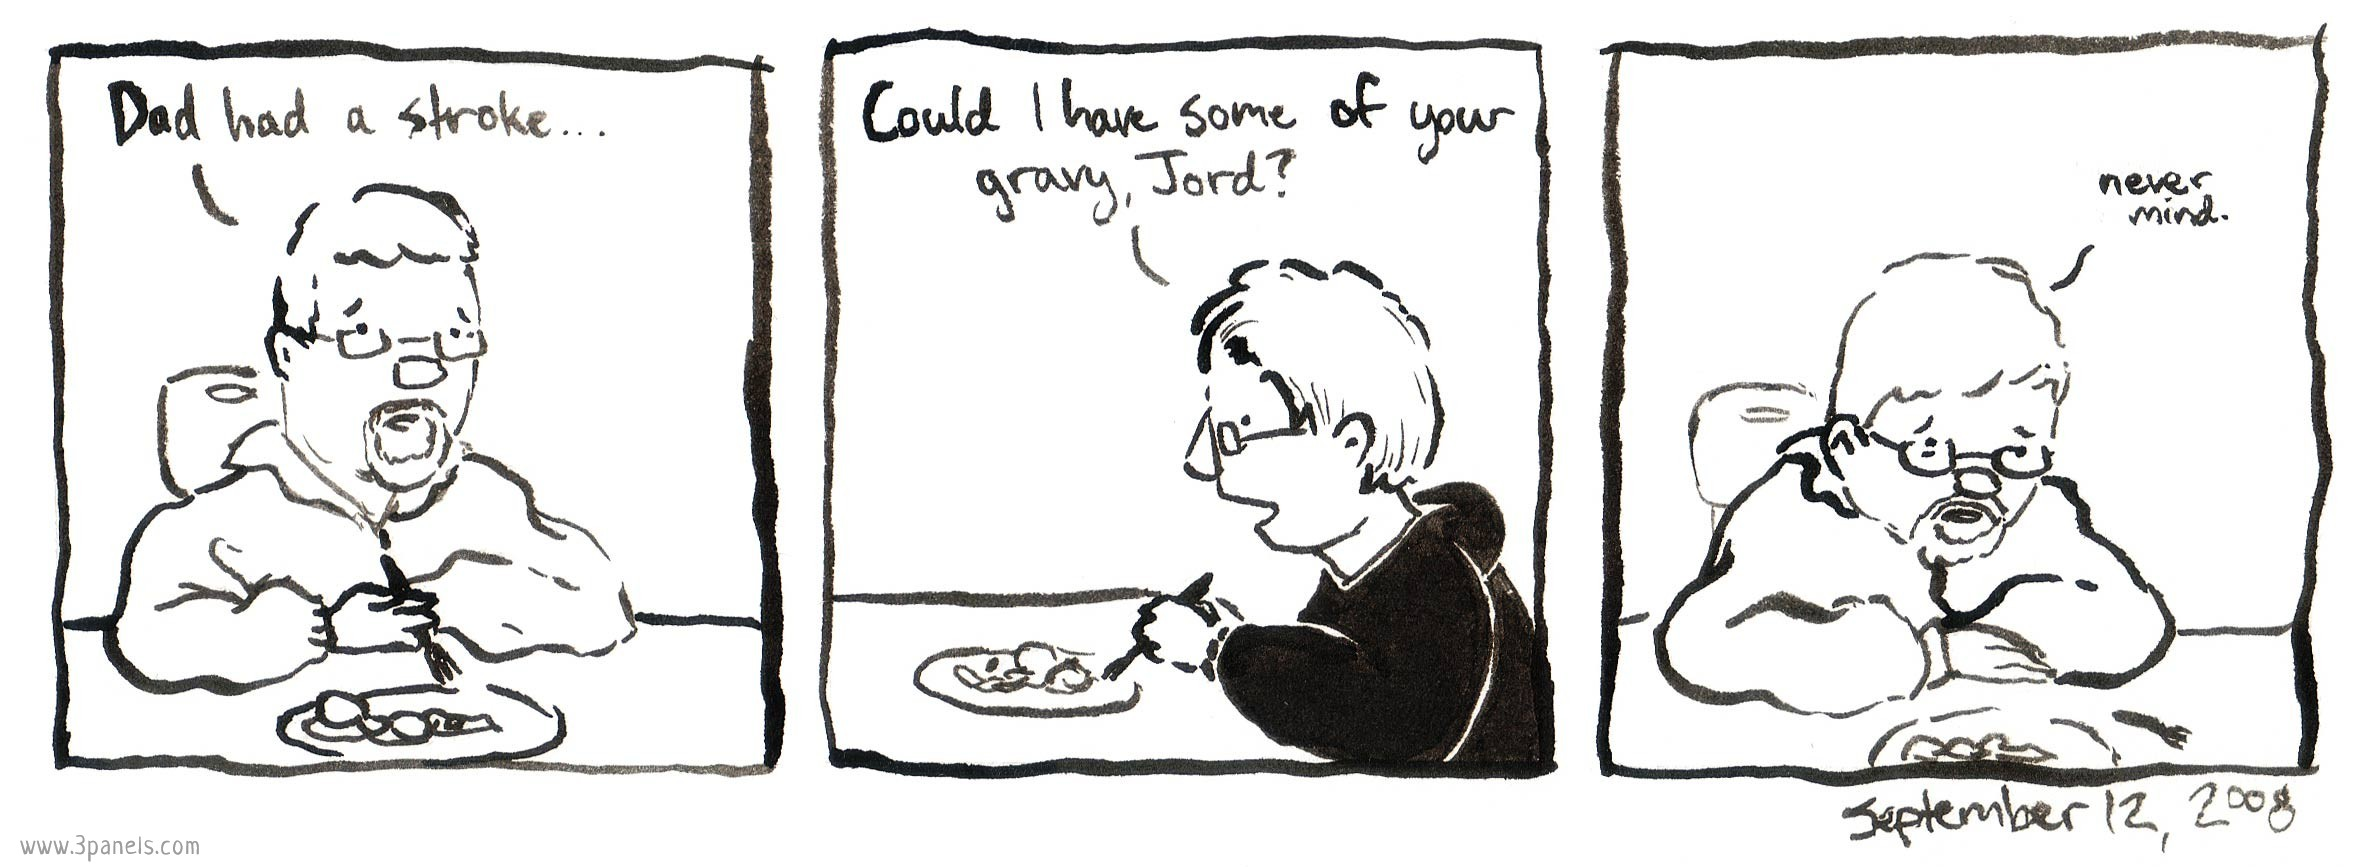 "Dean's family is eating dinner together. Dean's dad says: ""Dad had a stroke..."" Having not heard him, Dean's mom says to Jordan: ""Could I have some of your gravy, Jord?"" Dean's dad looks down at the table and says: ""Never mind."""